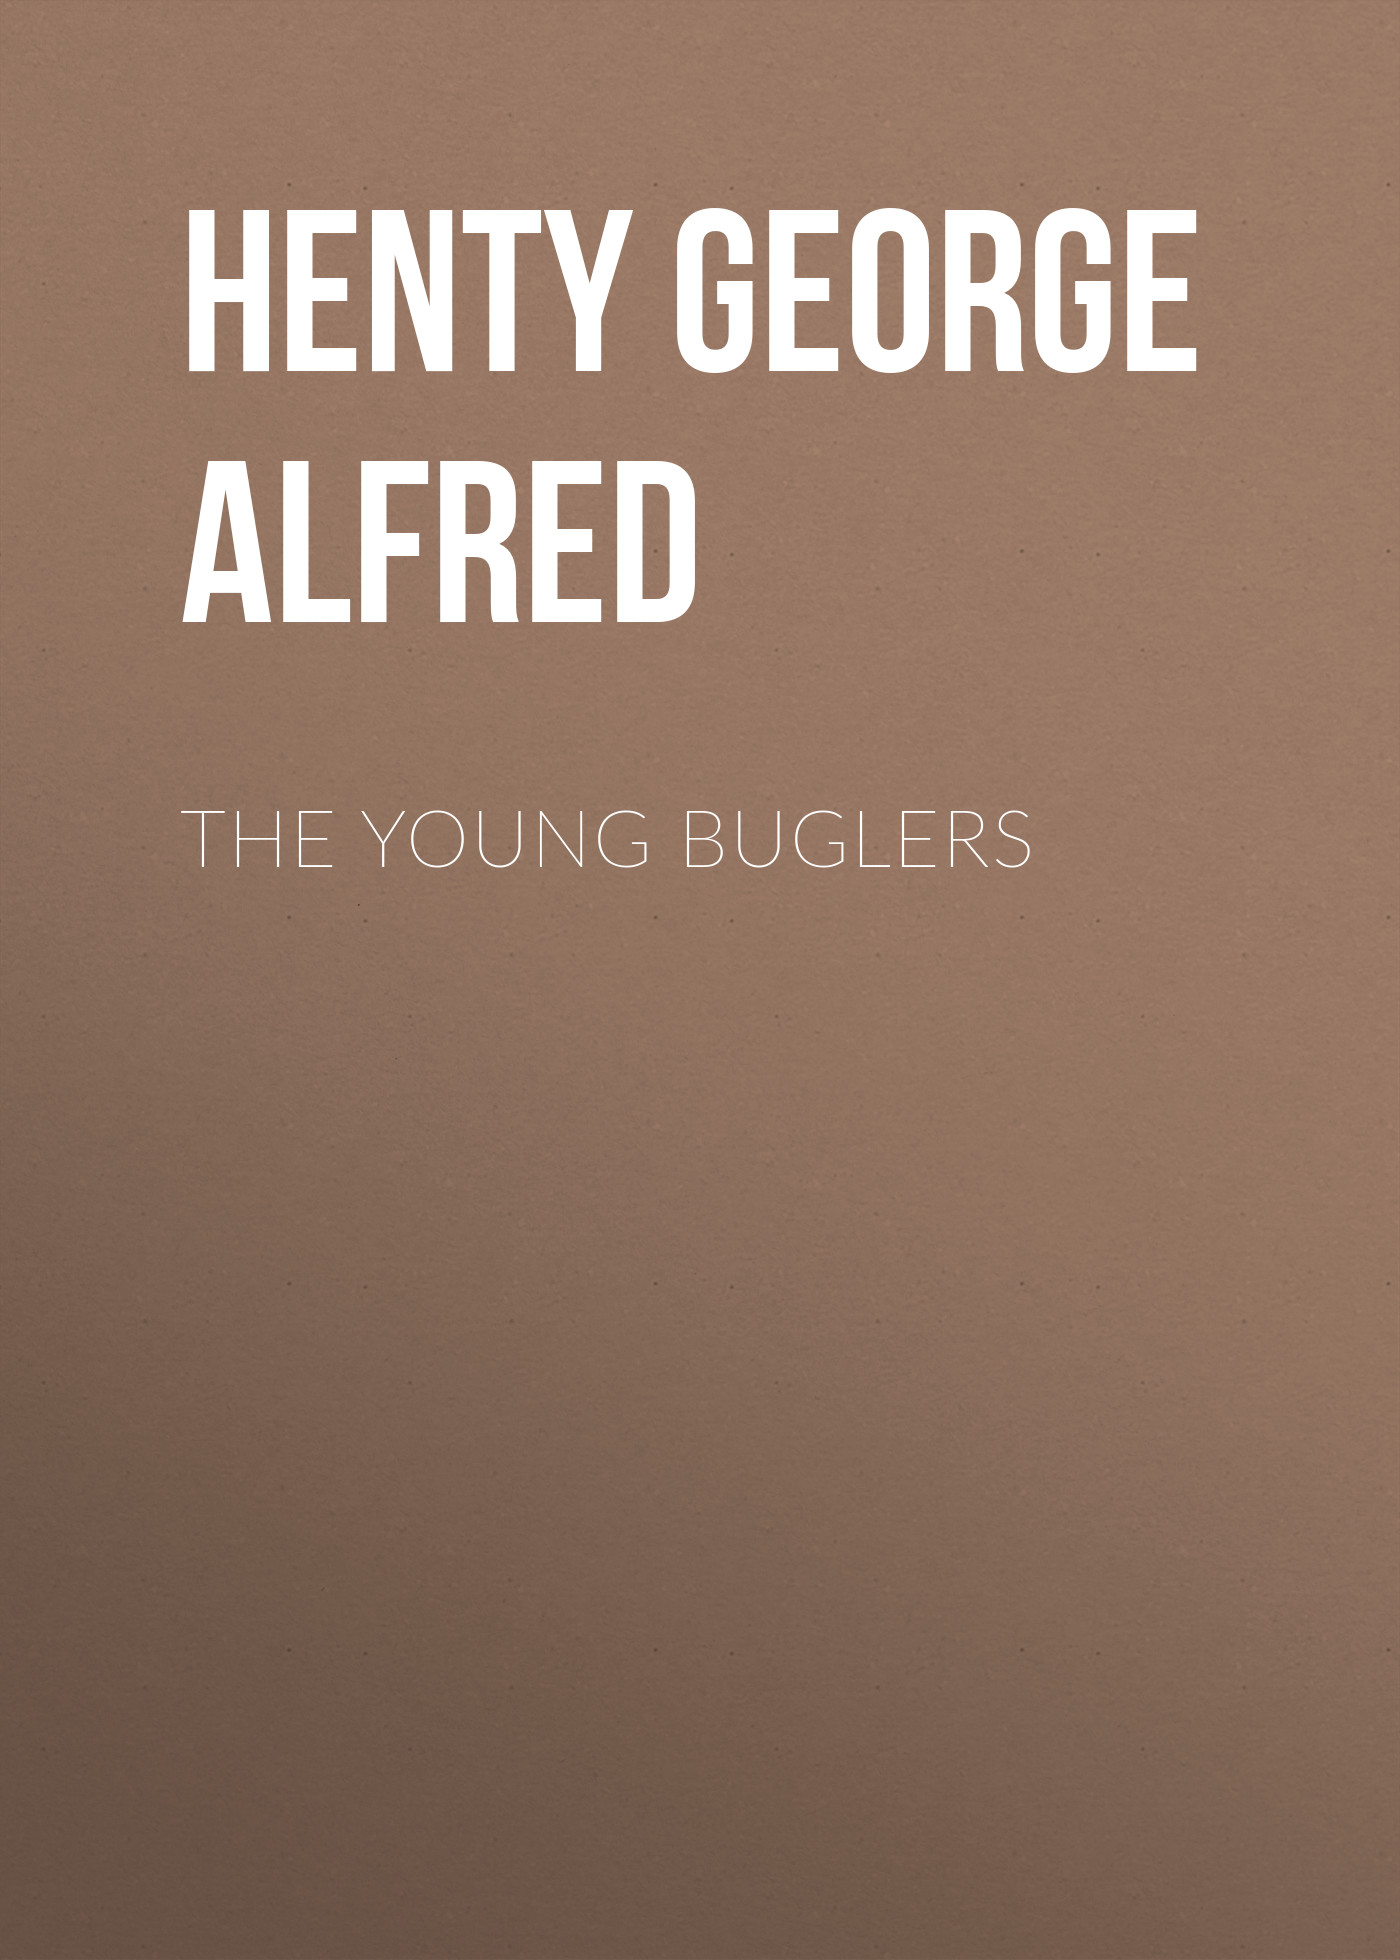 лучшая цена Henty George Alfred The Young Buglers